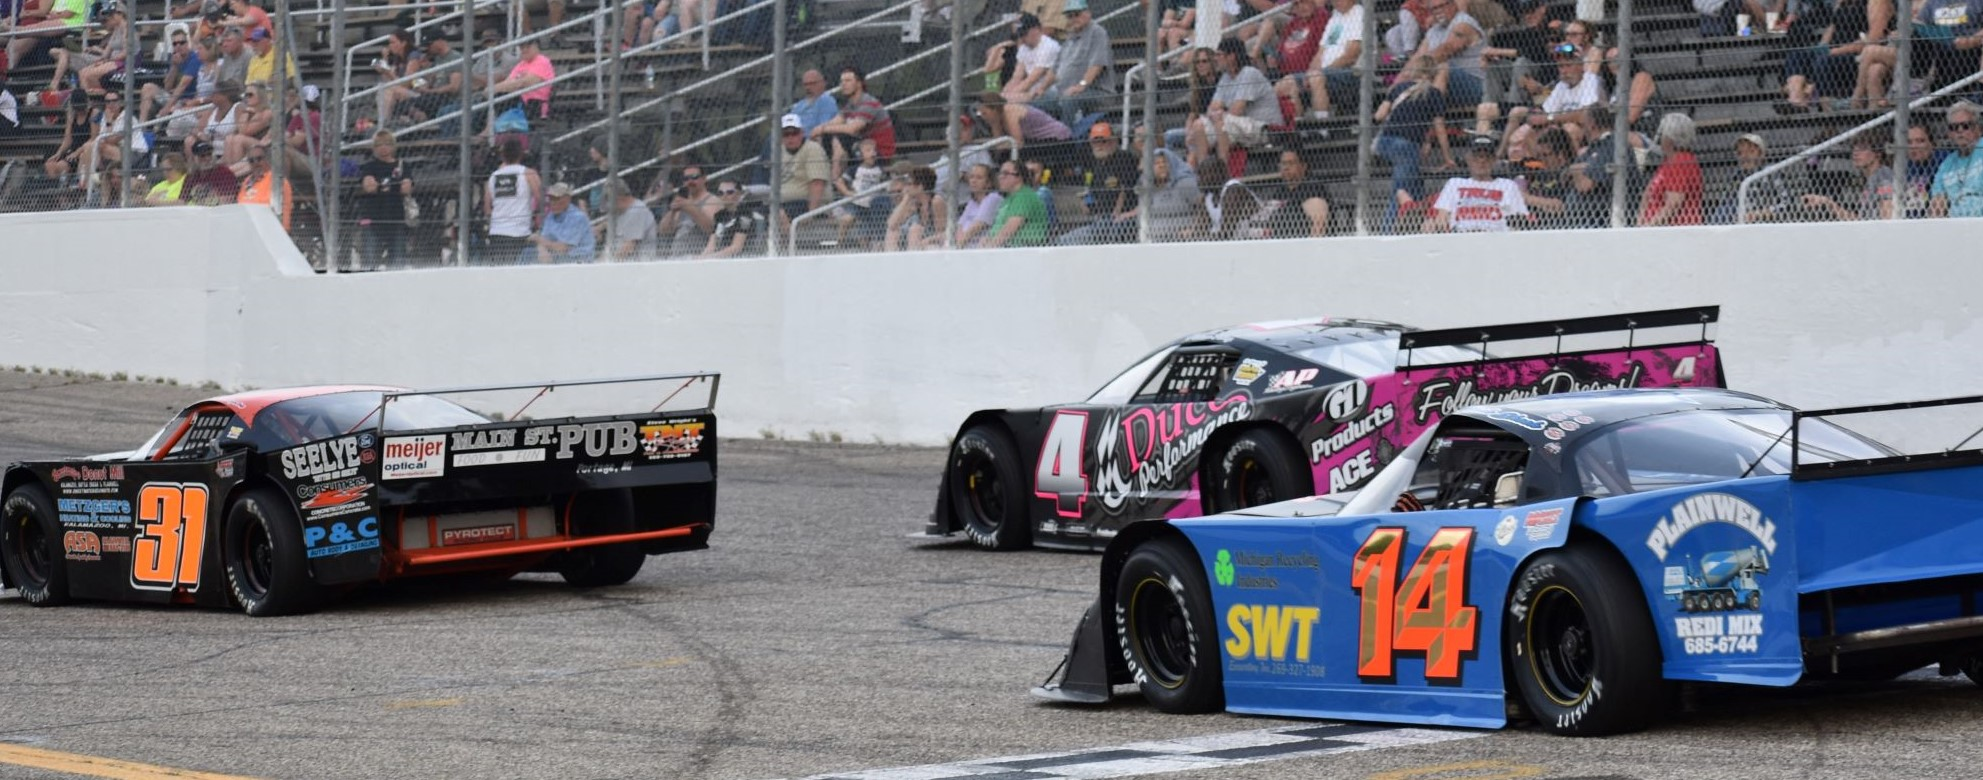 CAR CITY WEEKLY RACING - TLM, SS, FWD and the ZOO Stock Race